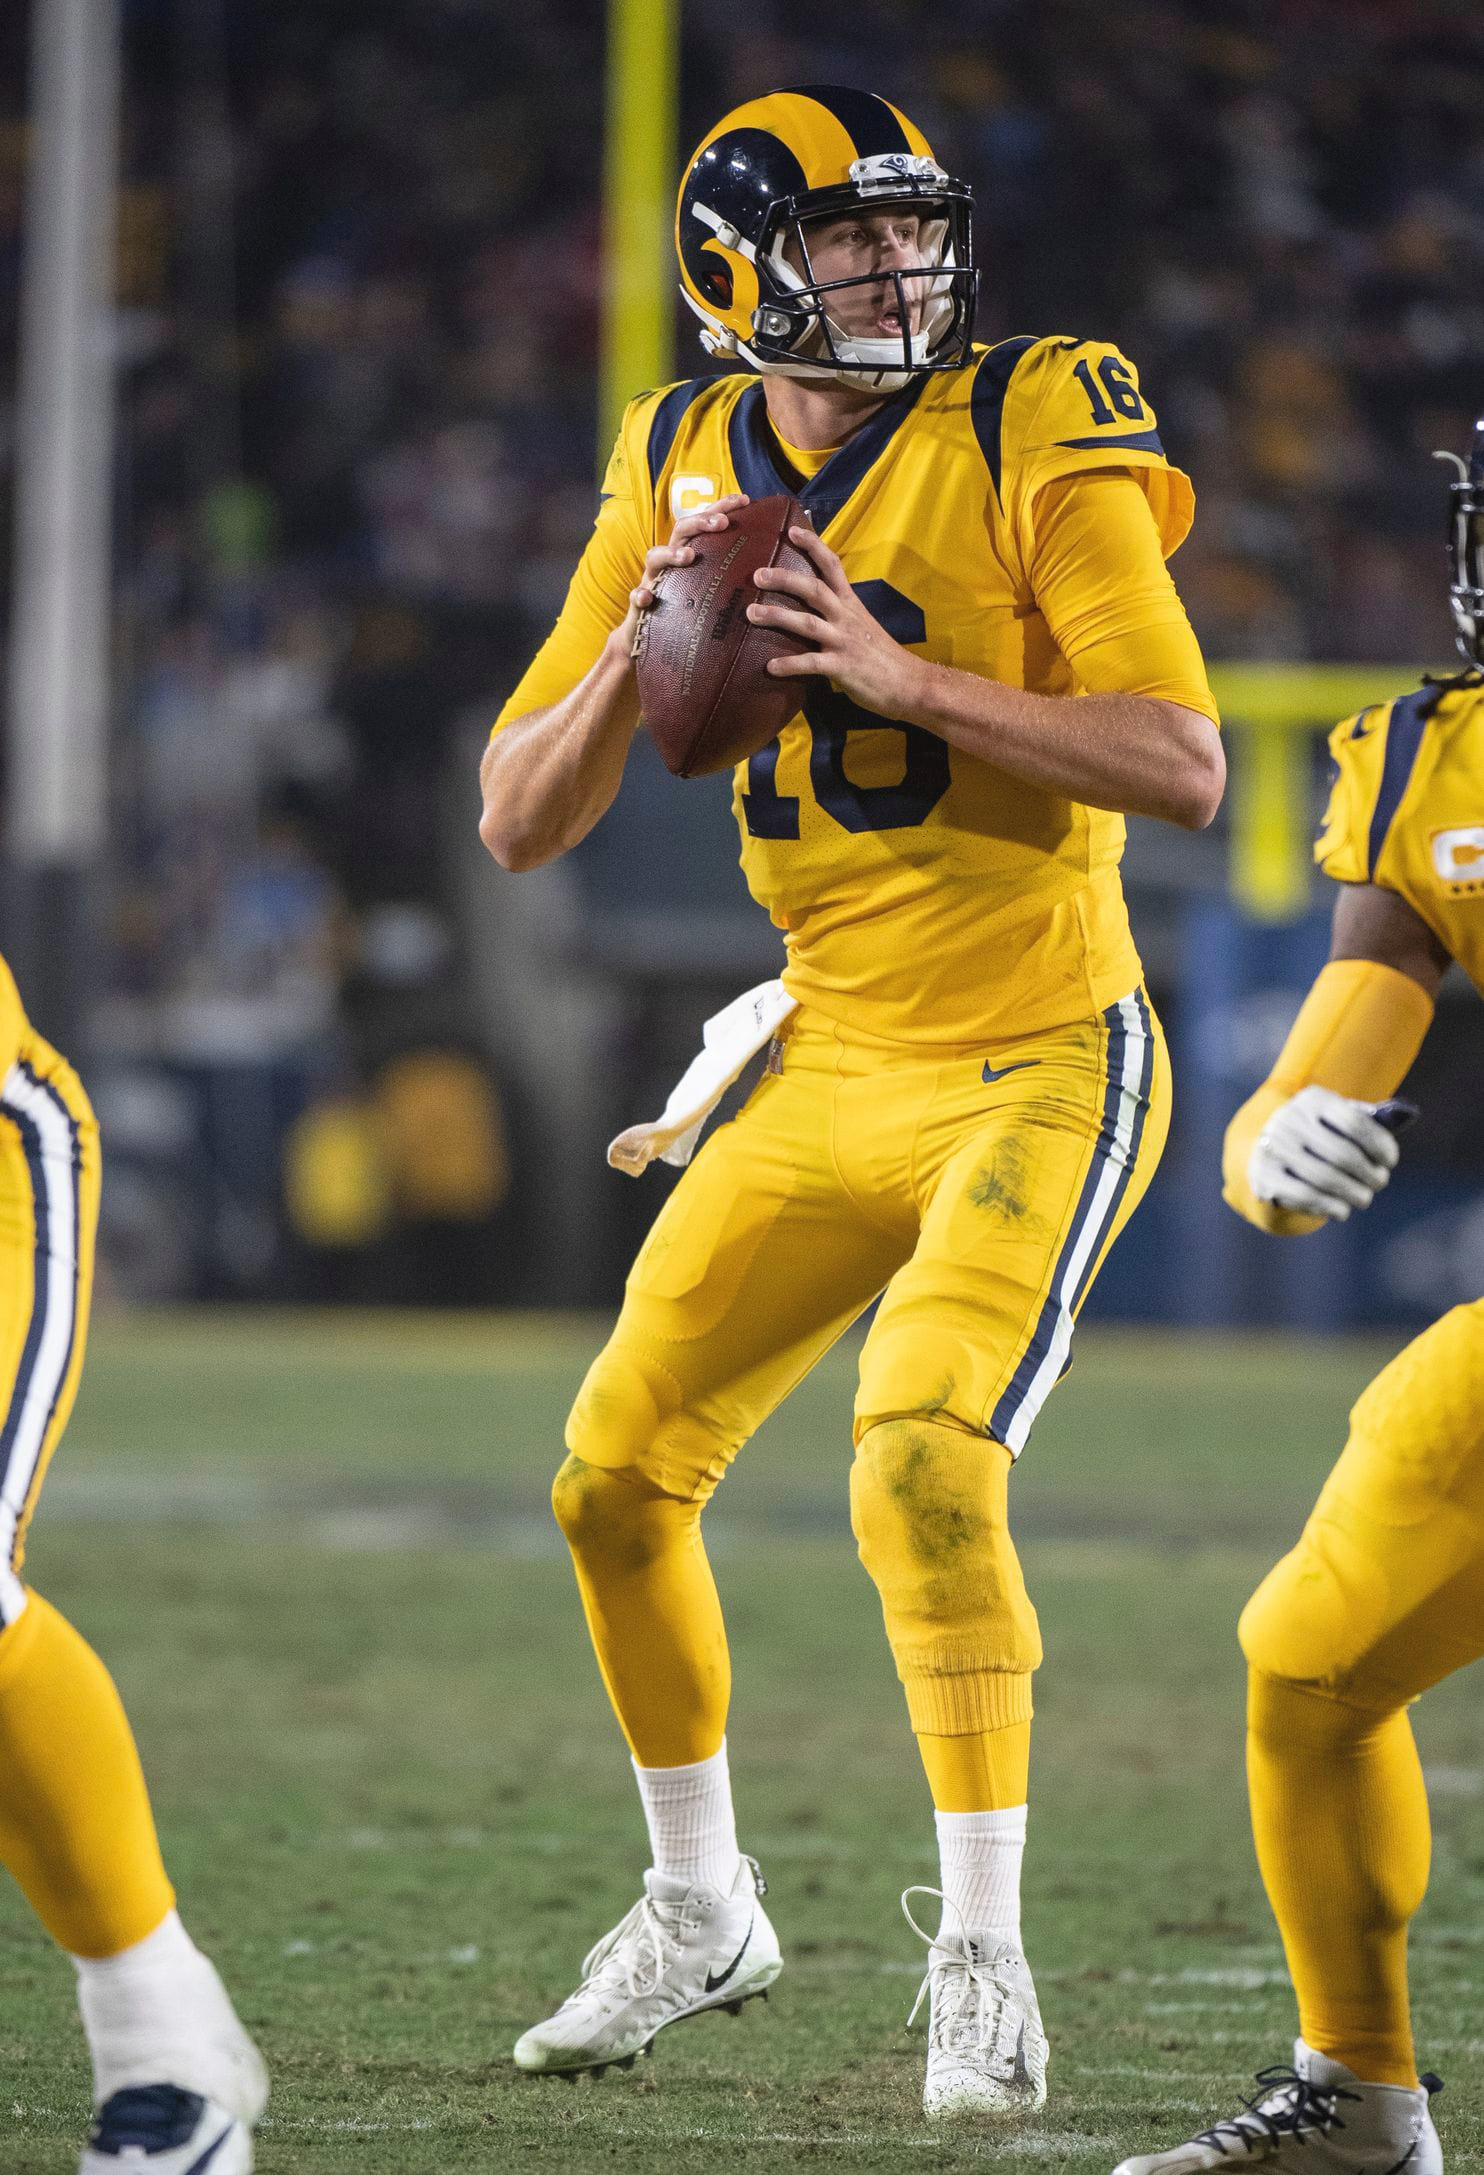 Jared Goff led the Rams to a win in the first-ever NFL game in which each team scored at least 50 points. (AP Photo/Kyusung Gong)